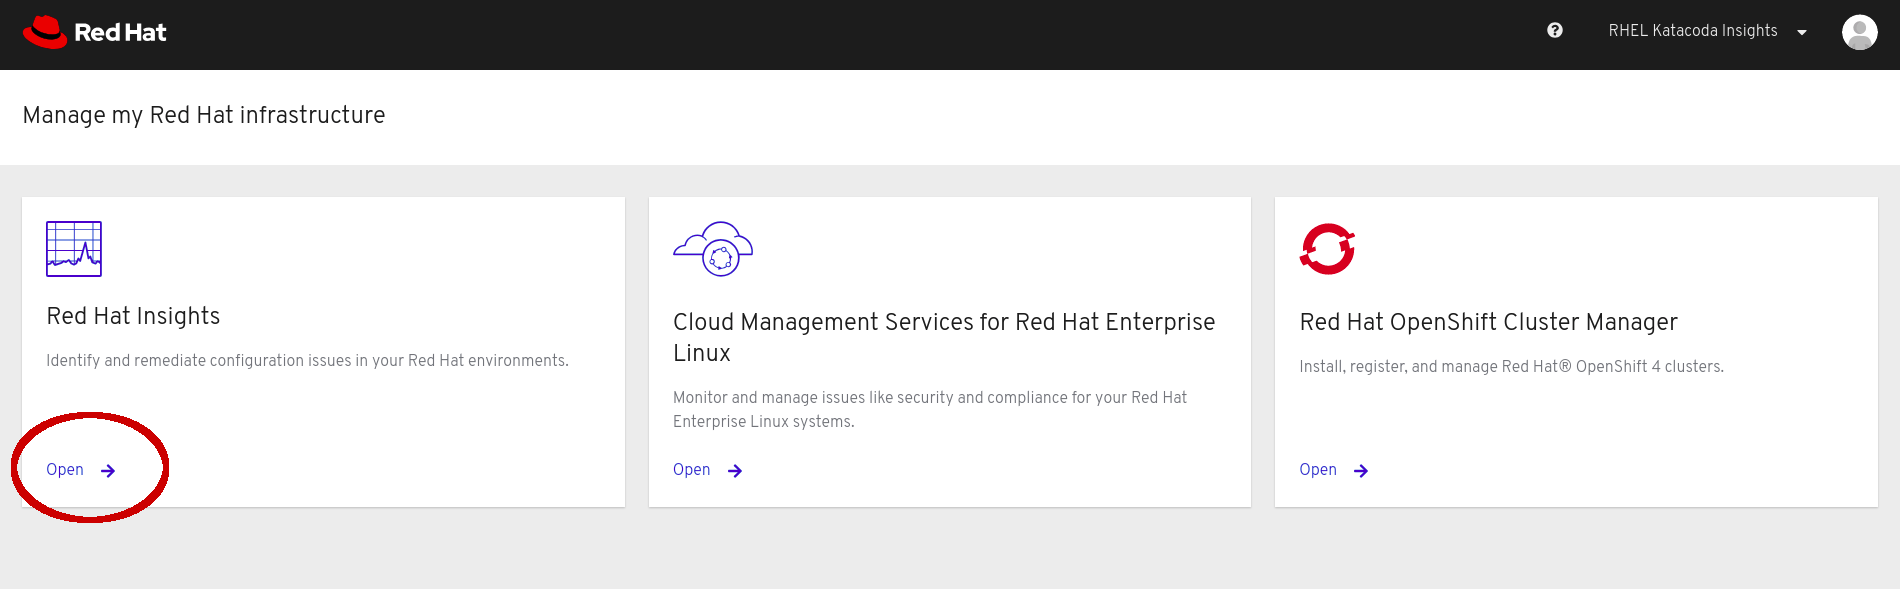 cloud.redhat.com Homepage